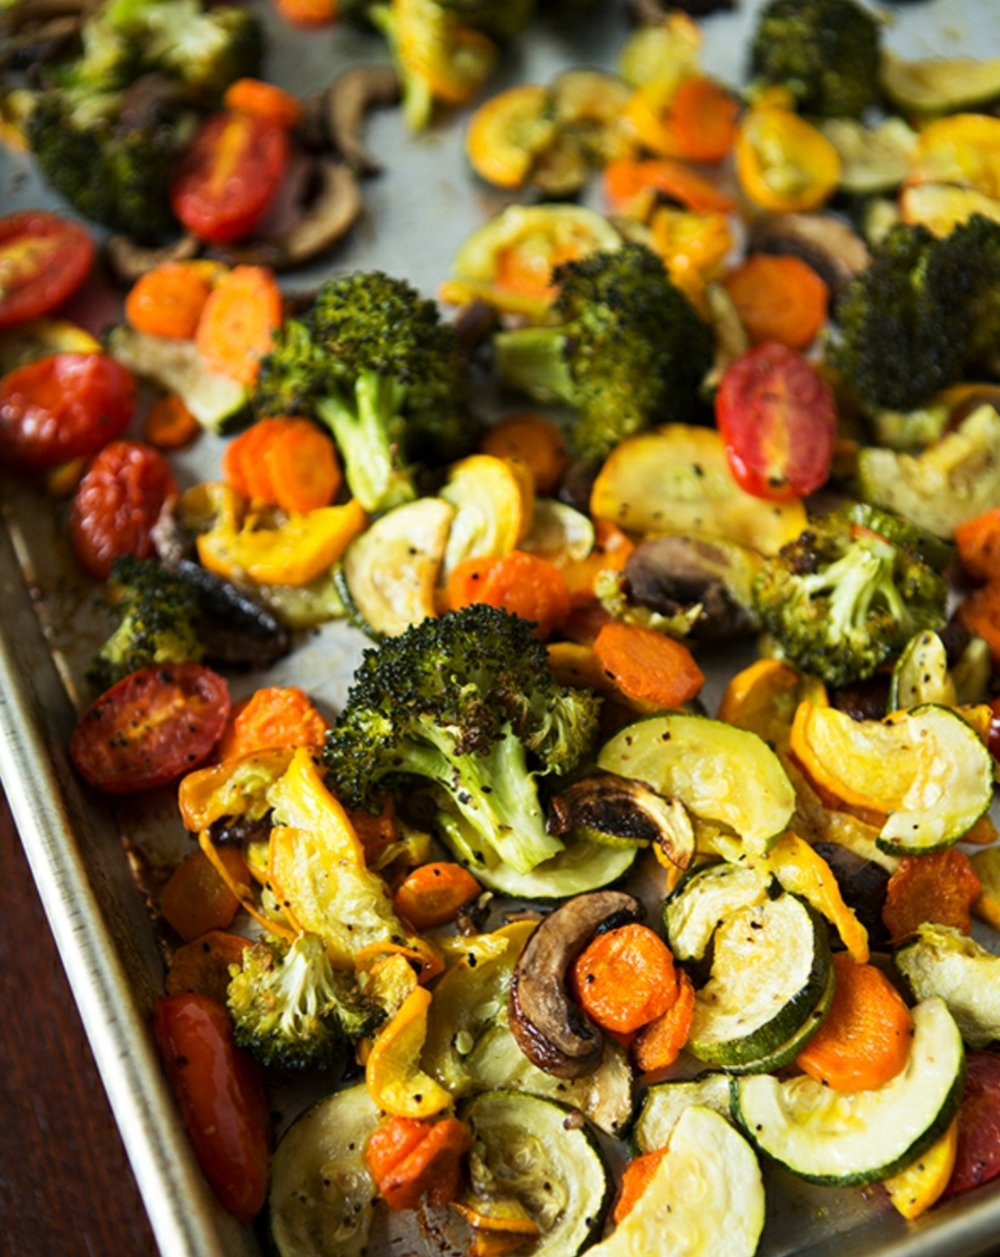 Roasted veggies.jpg